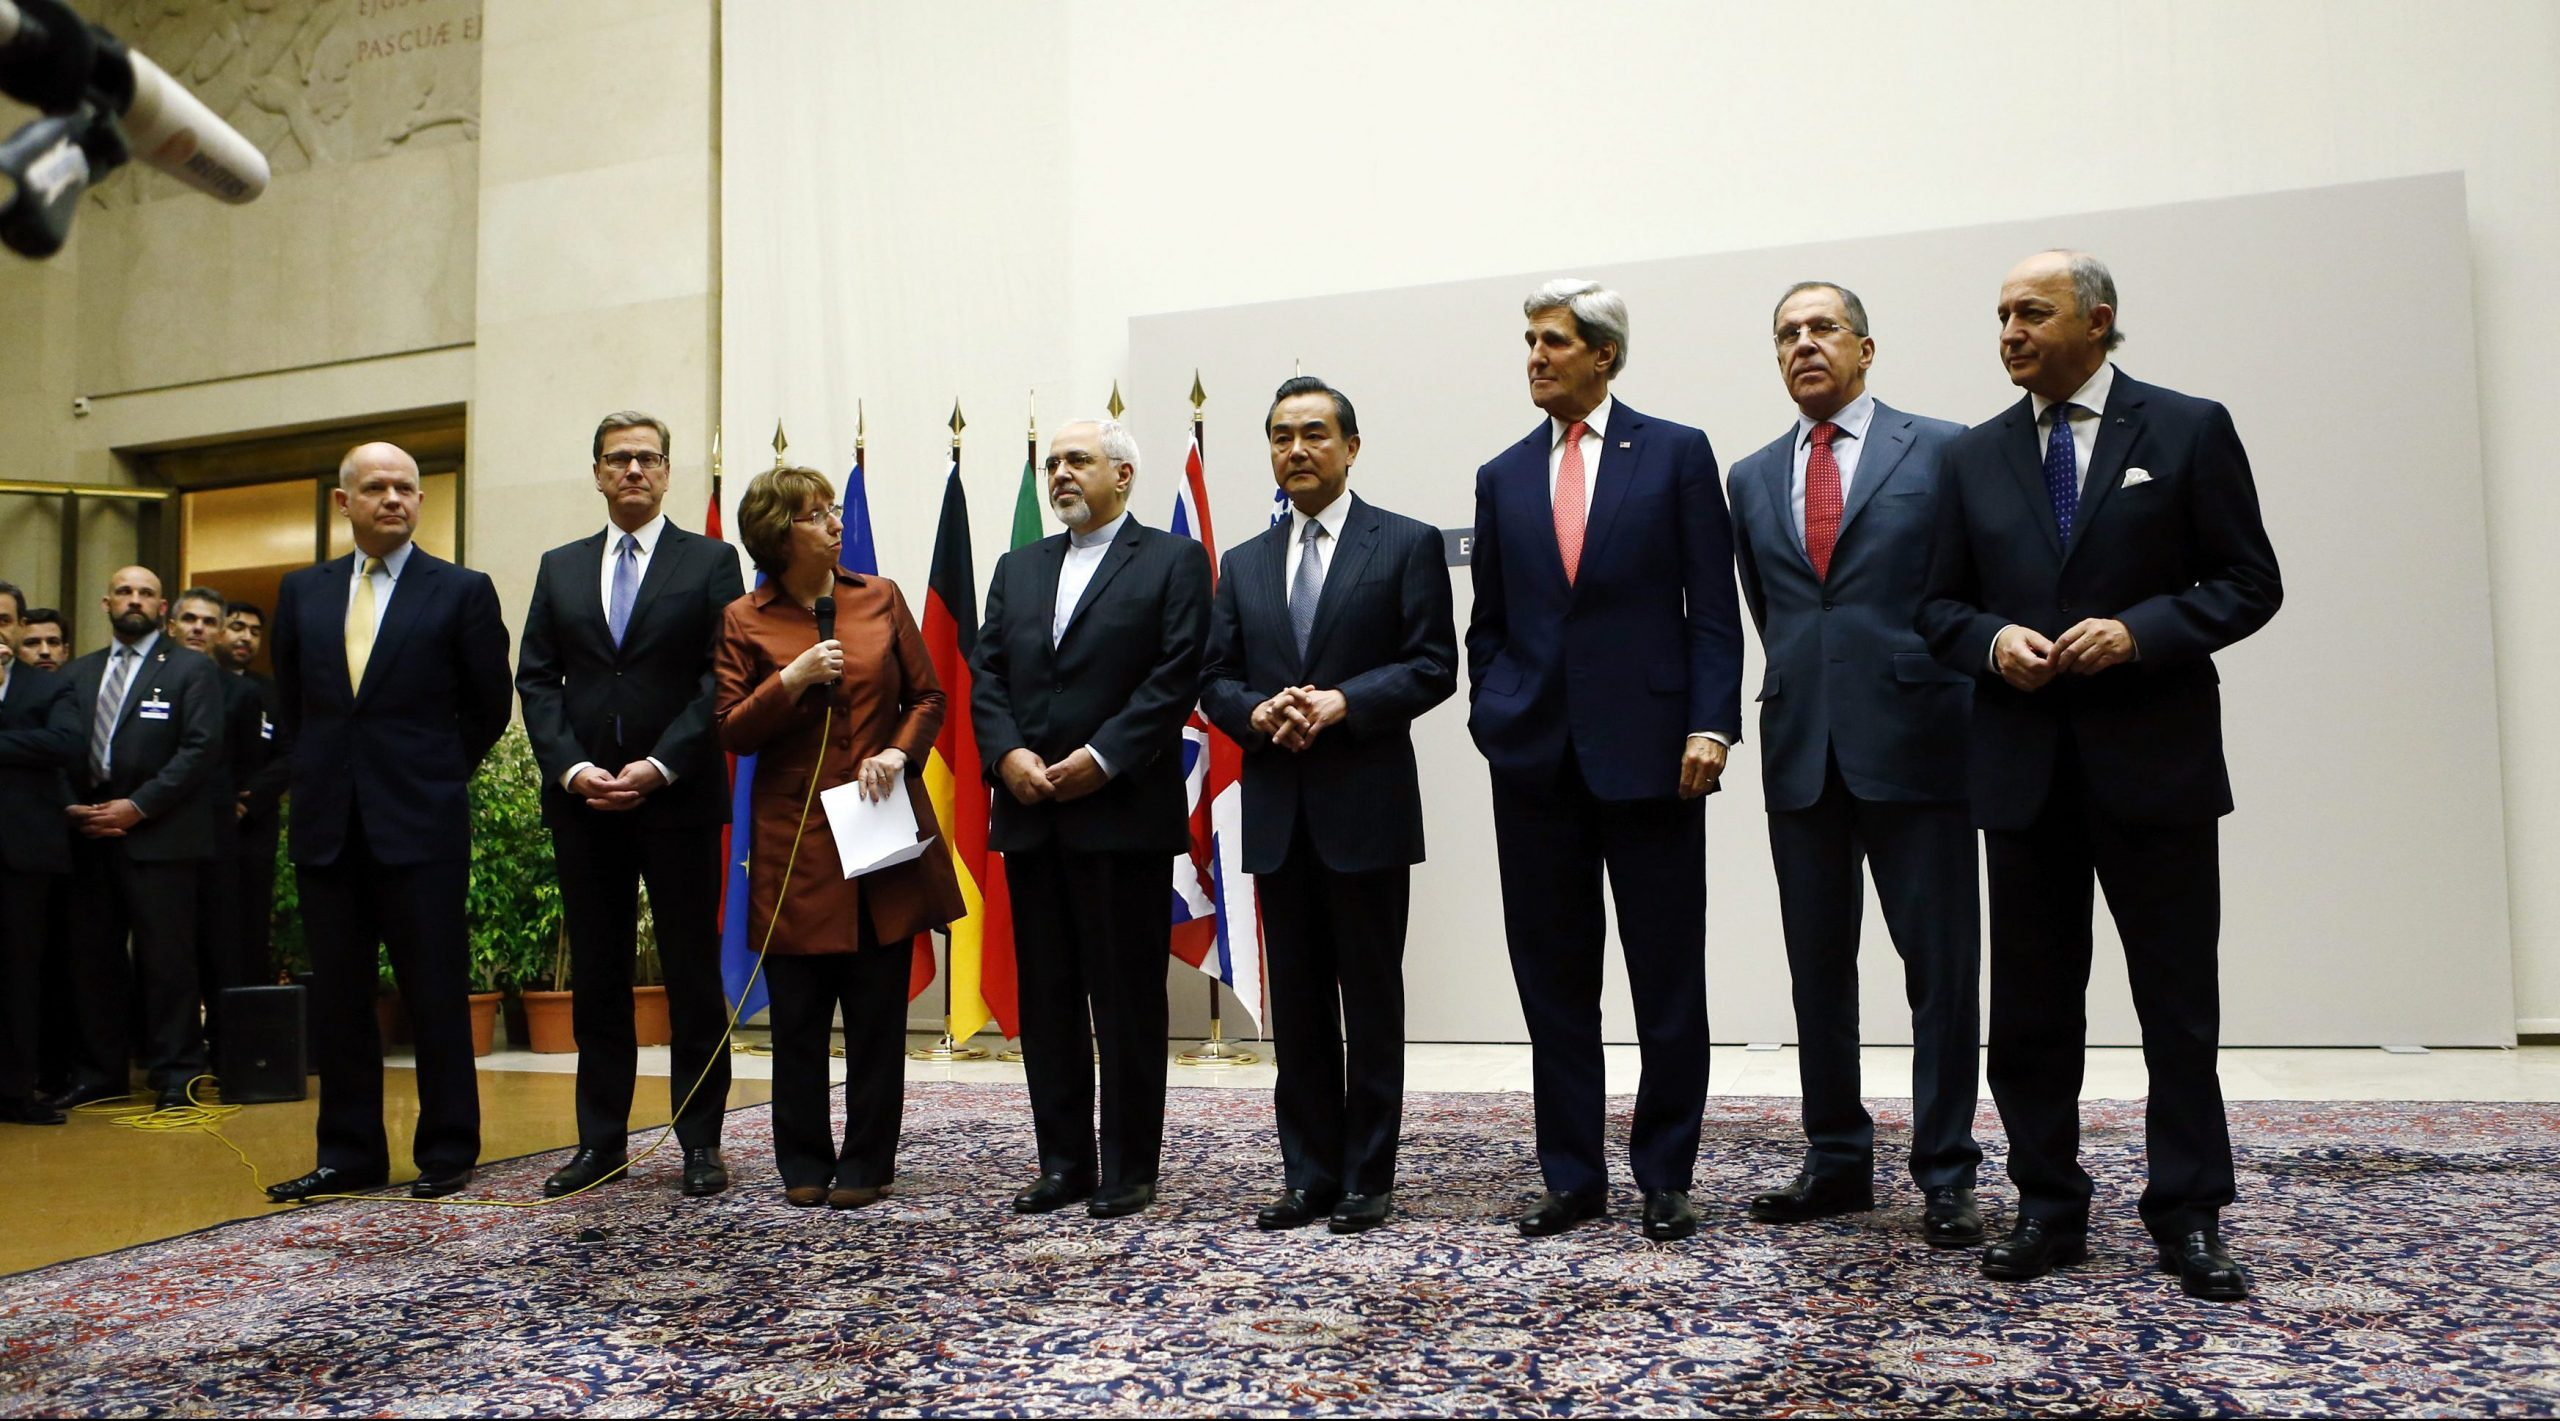 Iran interprets the European request to renegotiate the nuclear agreement as a lack of commitment